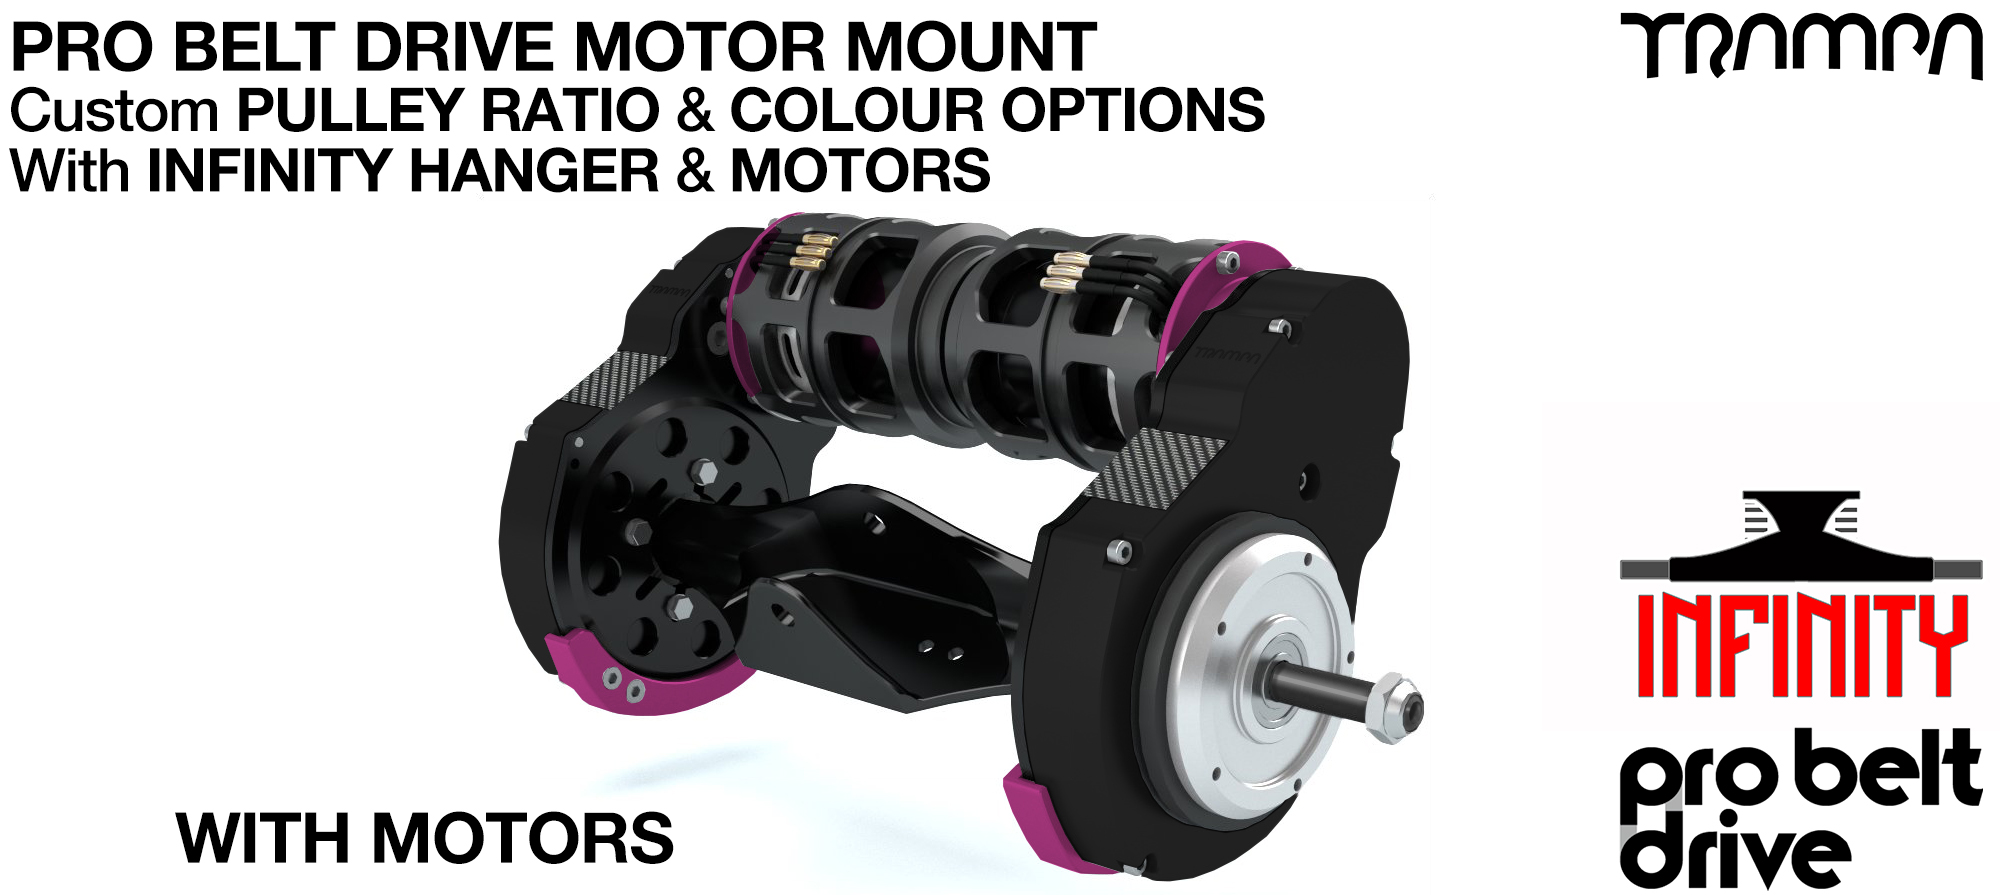 Mountainboard PRO Belt Drive TWIN Motor Mounts WITH Motors & Precision INFINITY Hanger